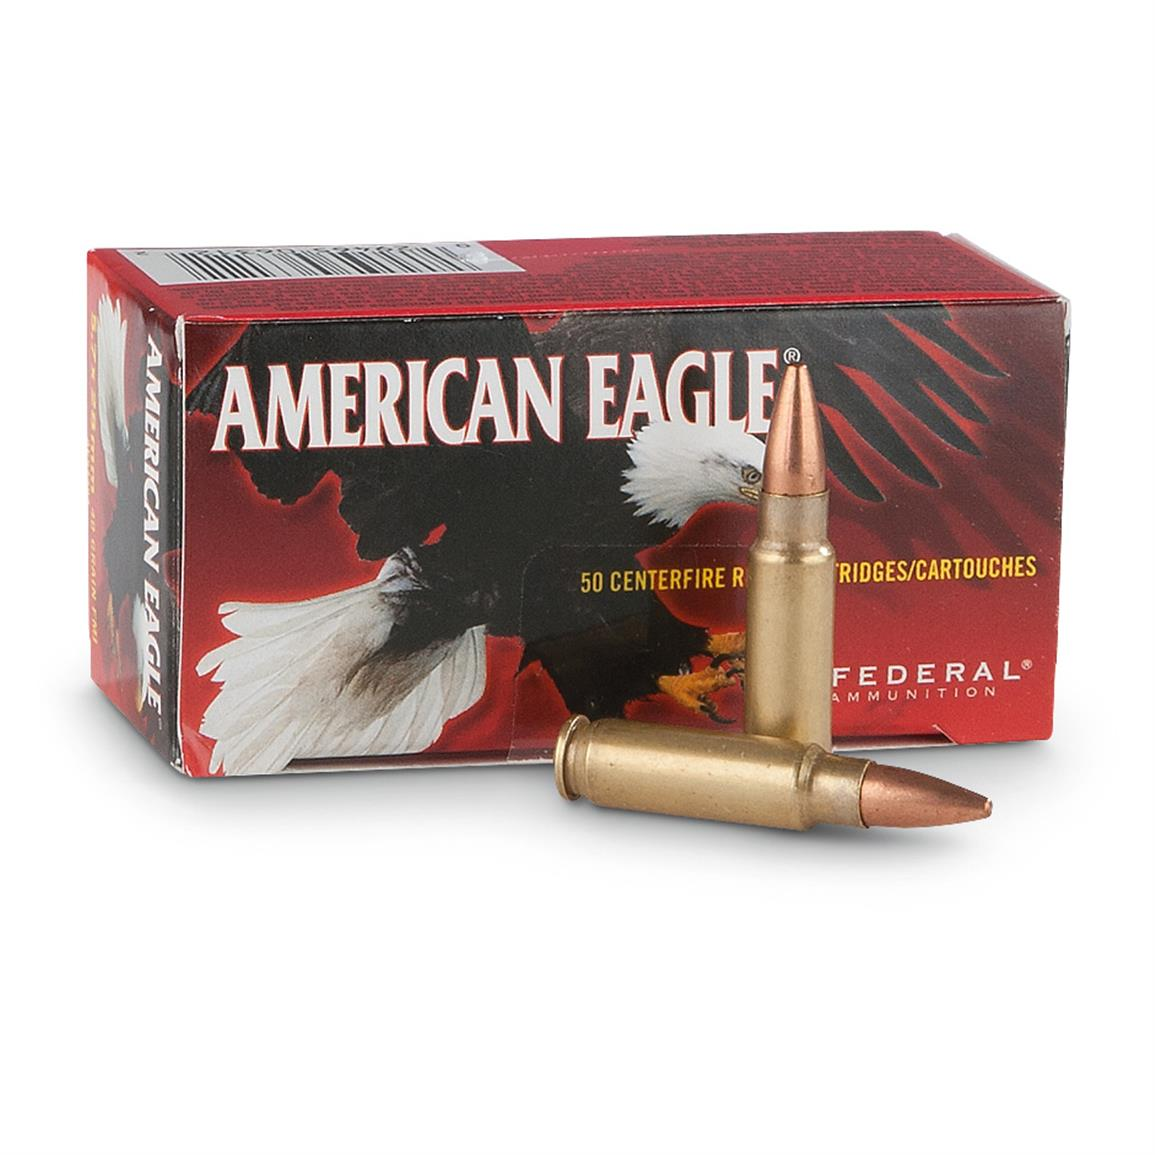 Federal American Eagle, 5.7x28mm, FMJ, 40 Grain, 50 Rounds